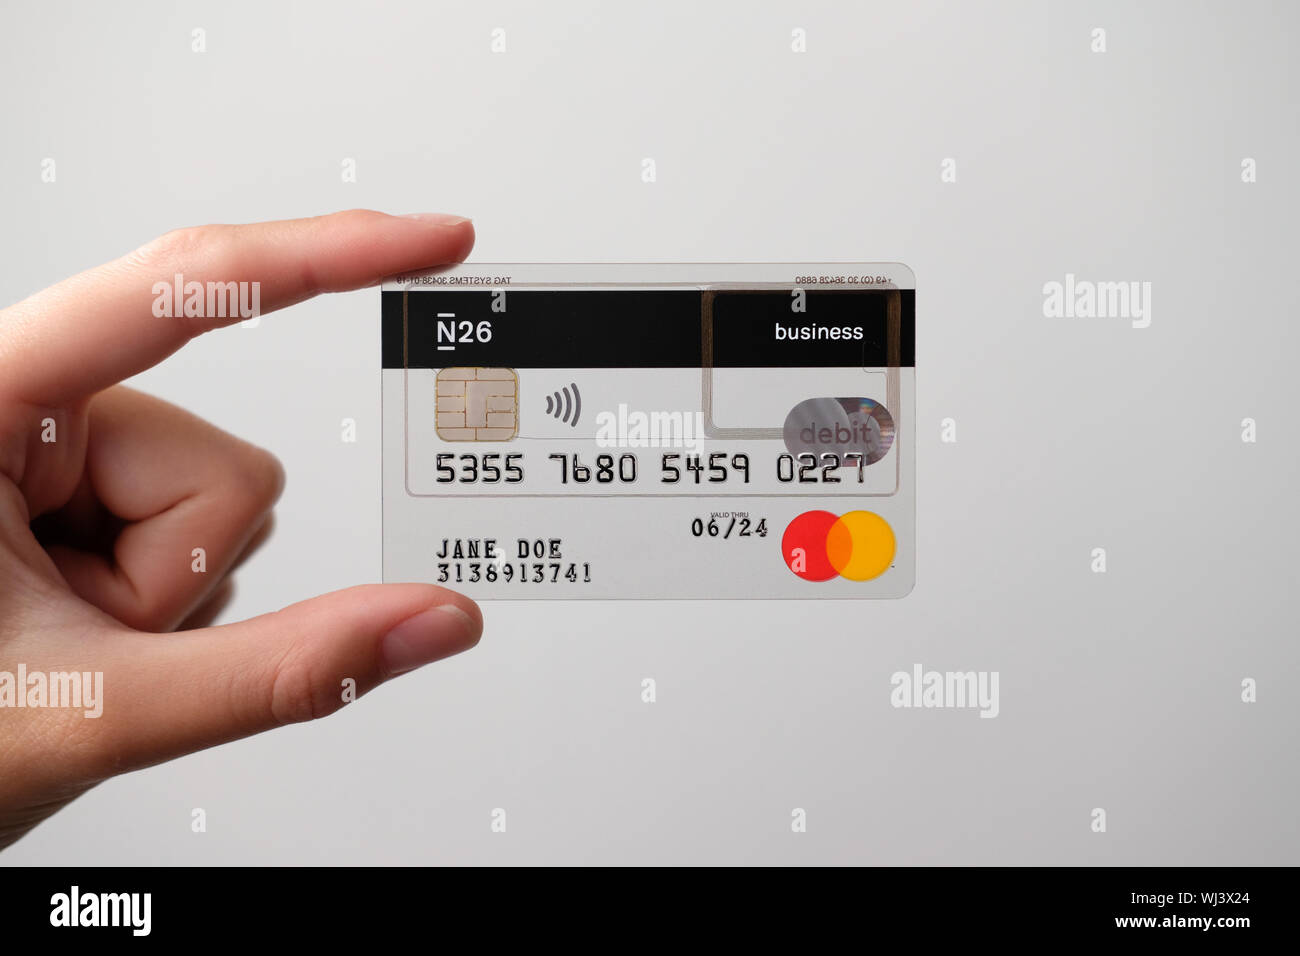 N26 transparent business creditcard held straight by female hand Stock Photo